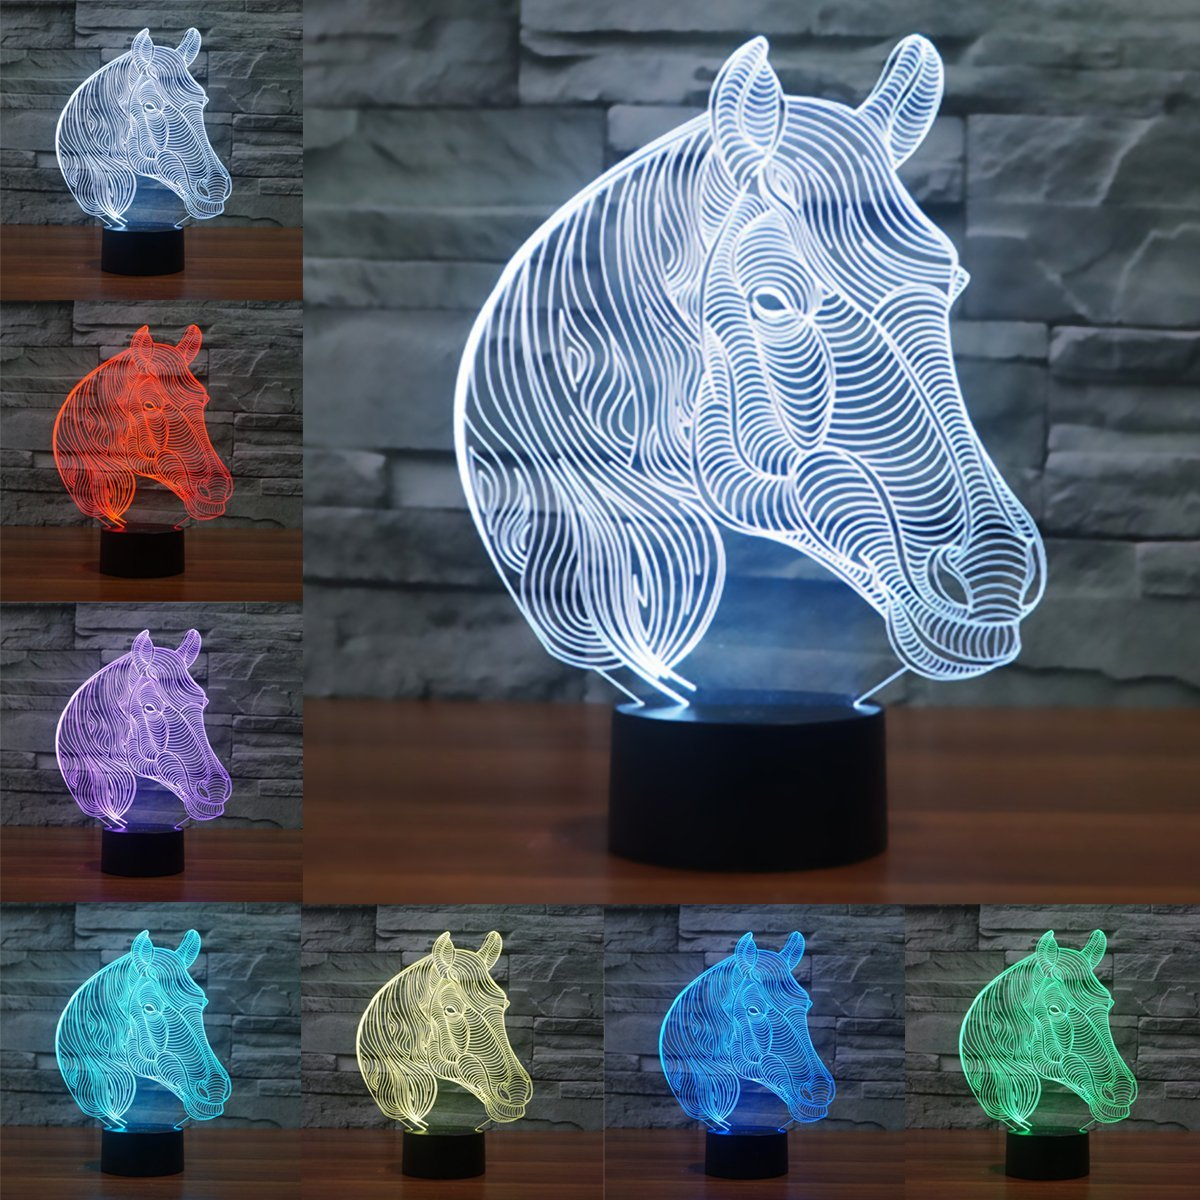 3D LED Optical Illusion Lamps Night Light, LSMY 7 Colors Touch Art Sculpture Lights with USB Cables Bedroom Desk Table Decoration Lamp for Kids Adults, mtb Motocross Bike